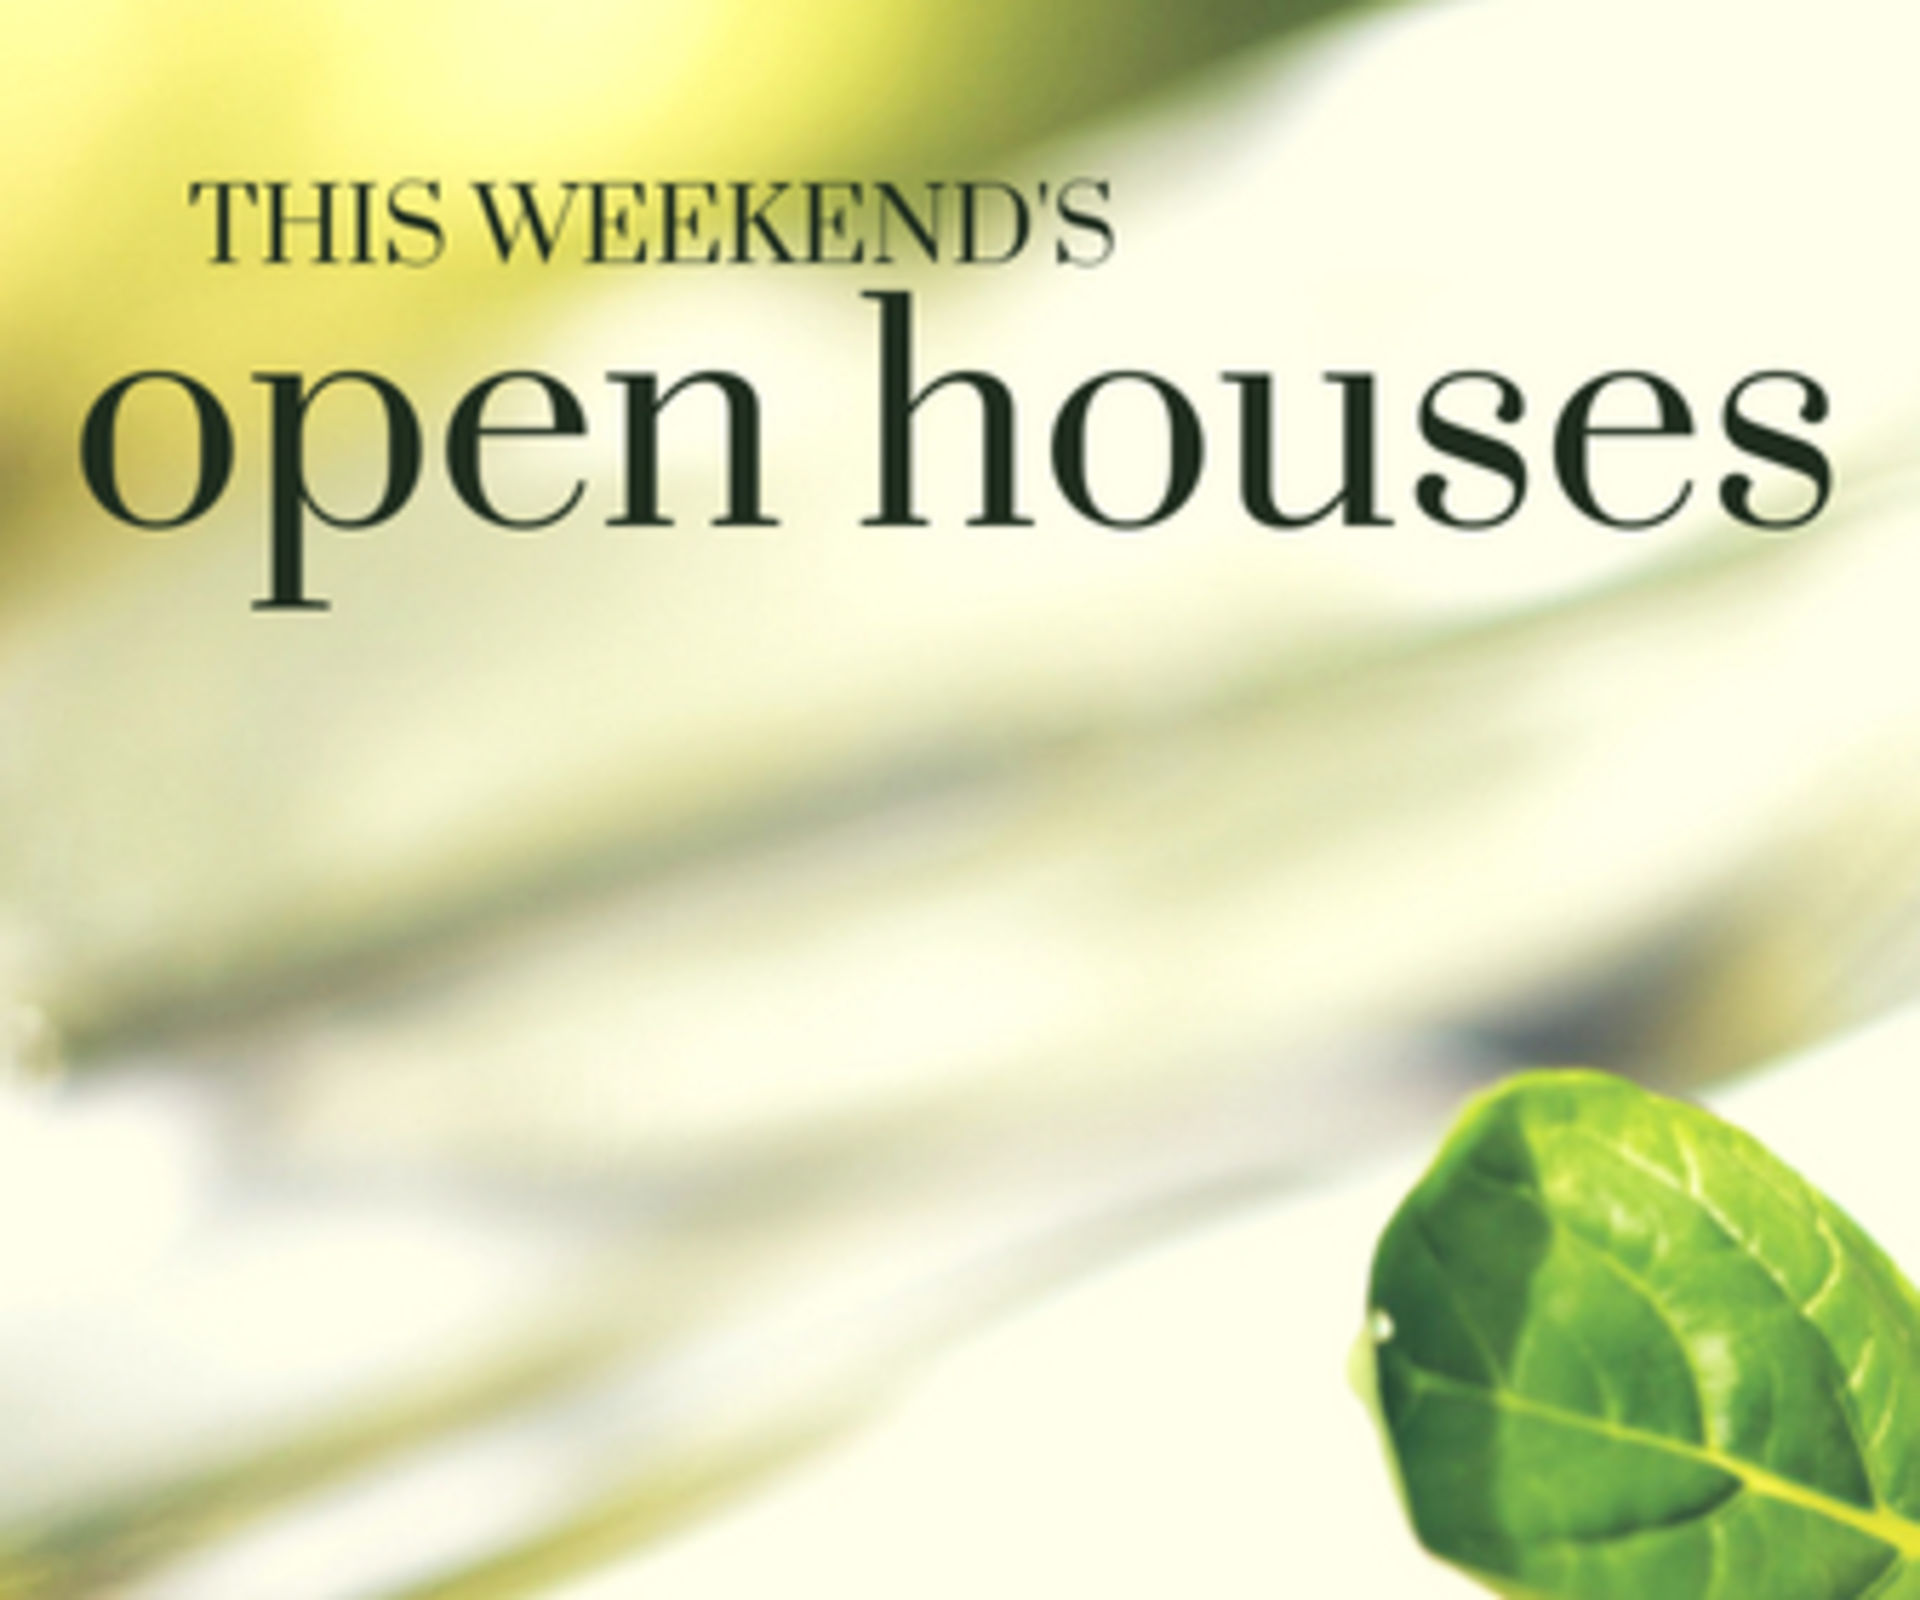 Shawnee and Leawood OPEN HOUSES! April 6th & 7th!